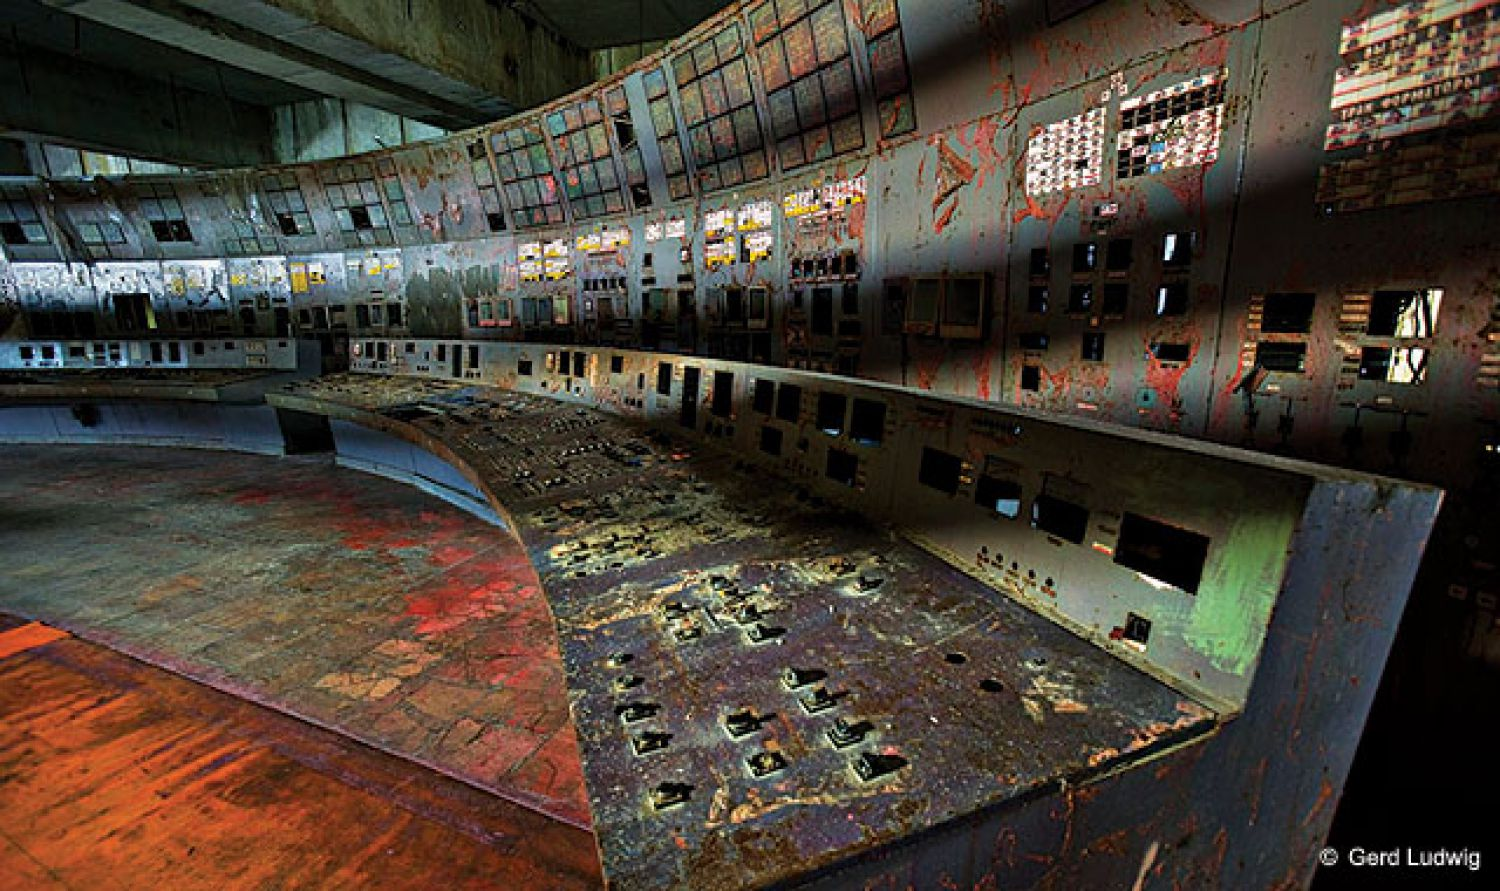 The control room of Chernobyl reactor No. 4 where a fatal series of errors during a safety test triggered a meltdown.